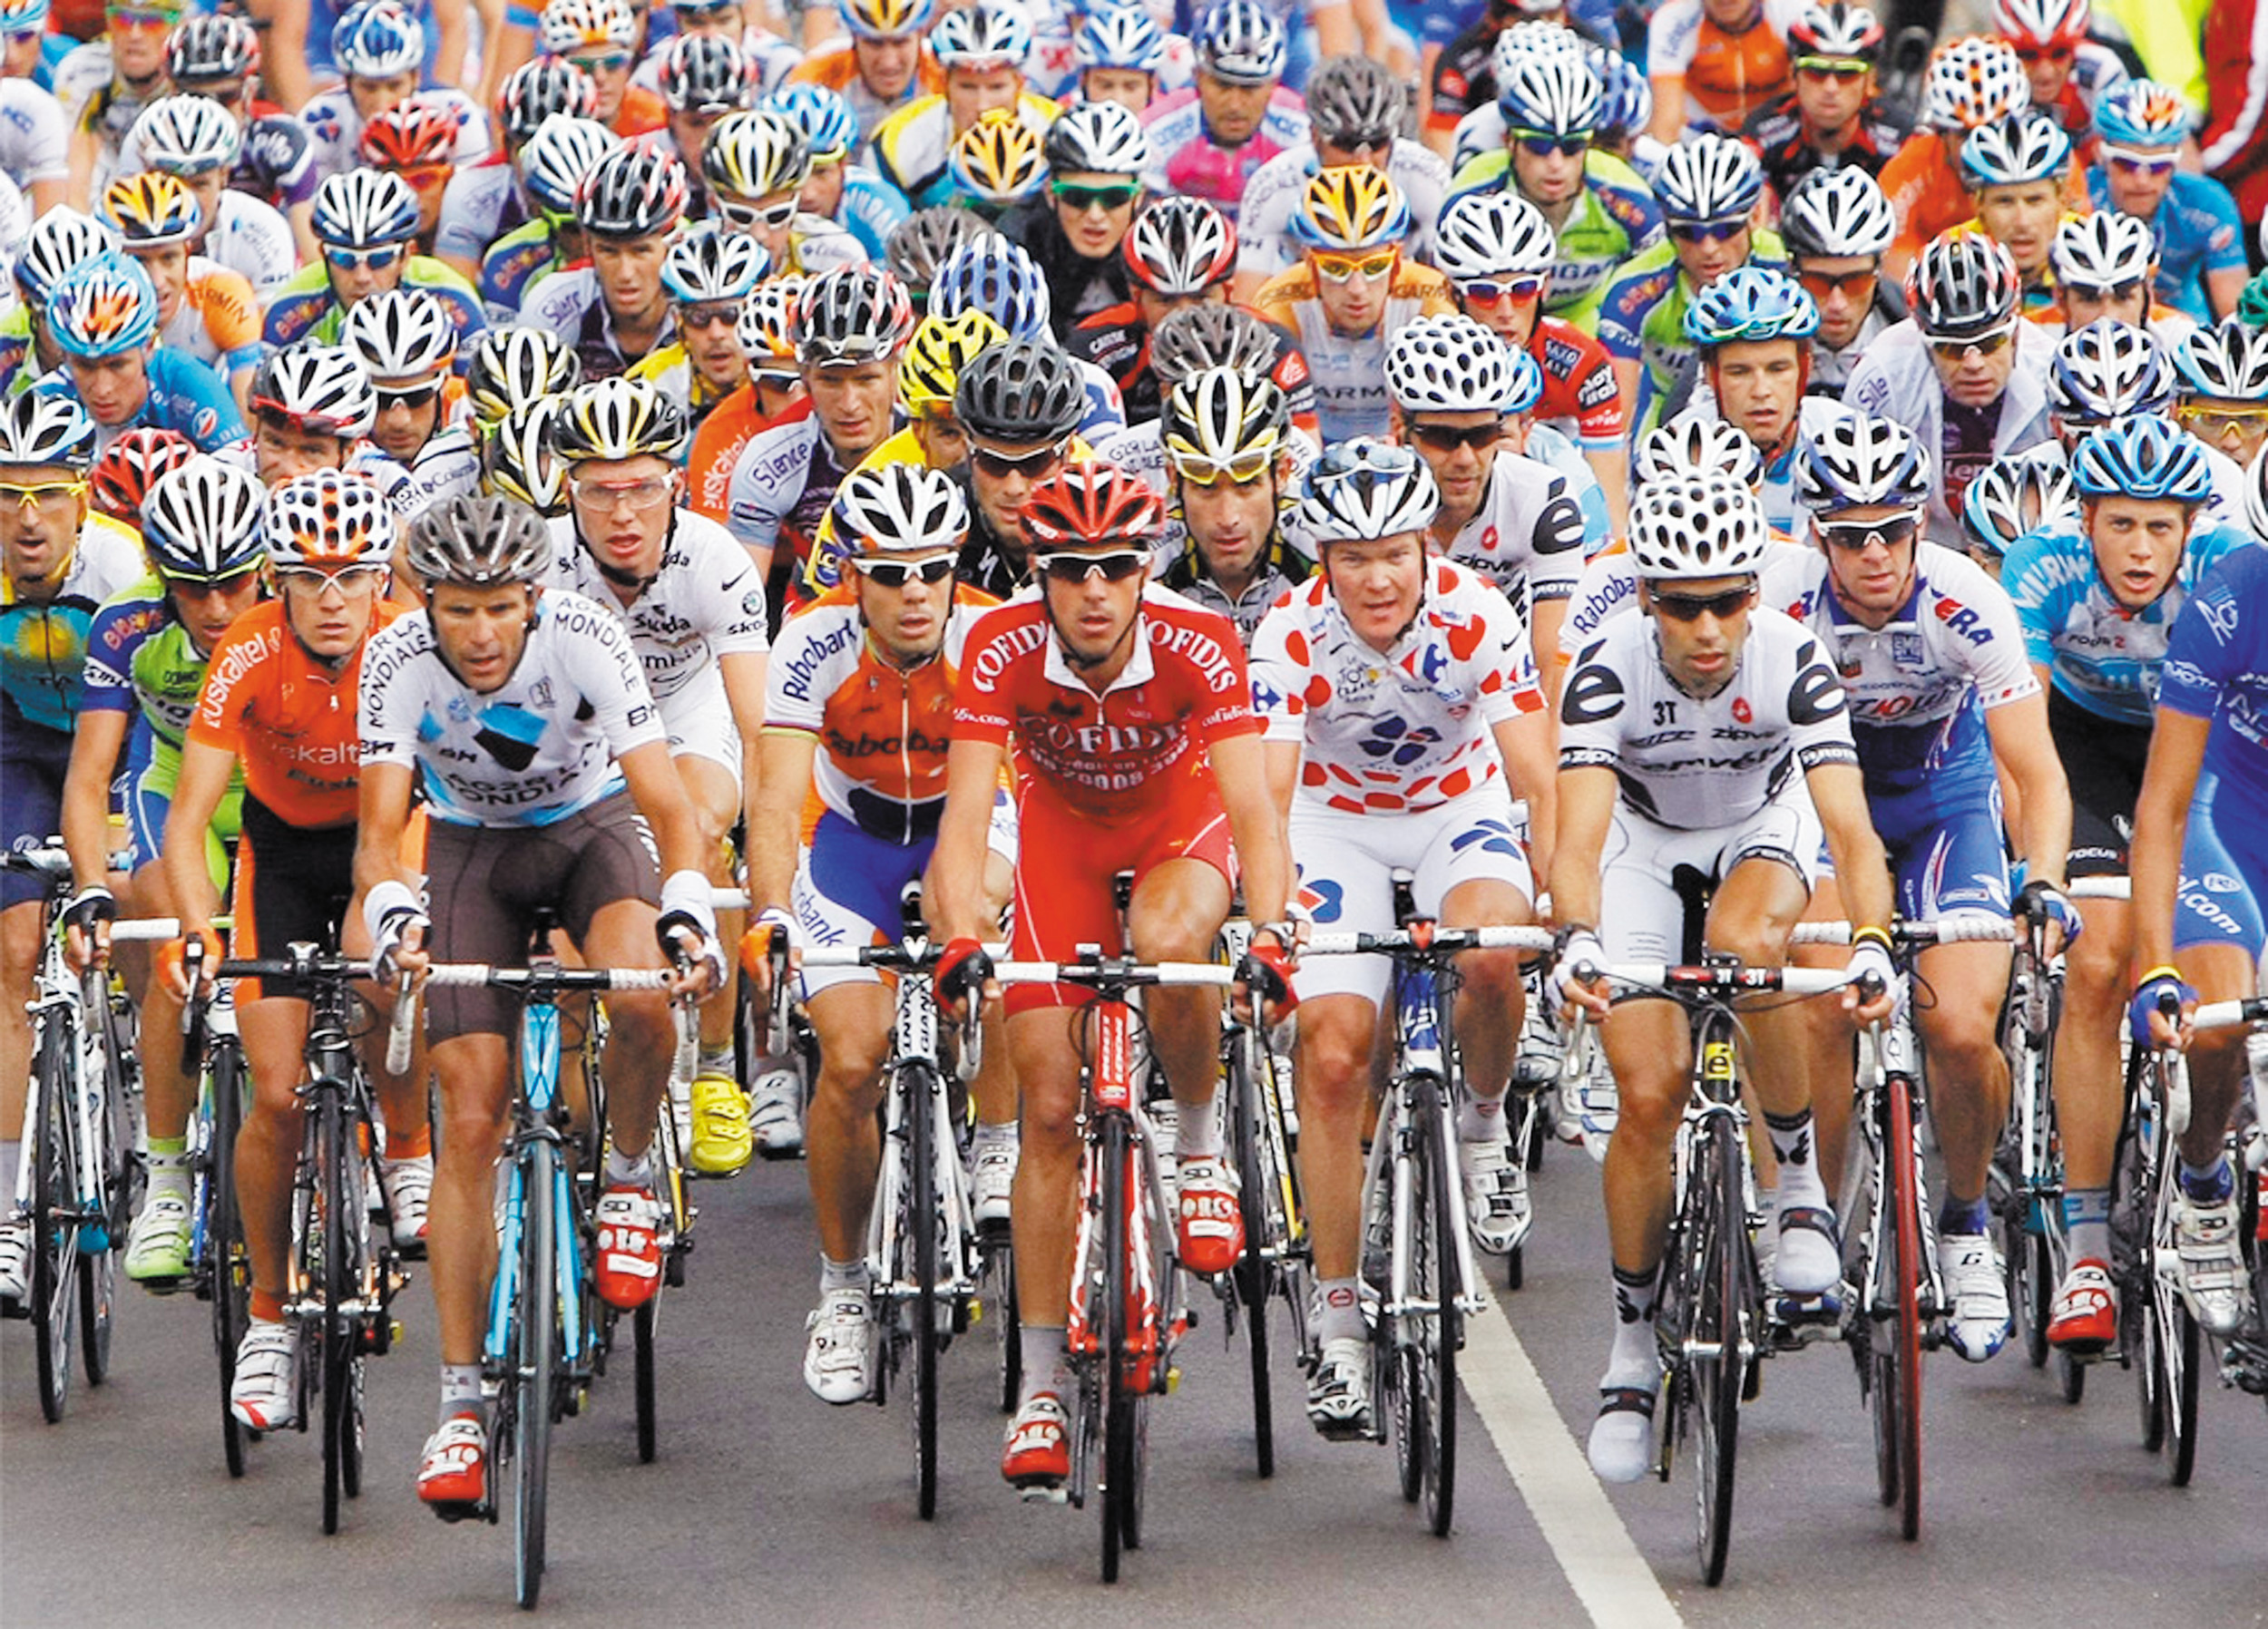 Teams have been announced for the 2014 version of the USA Pro Cycling Challenge. Stage 4 of the race will be Aug. 21 in Colorado Springs. Stage 5 will begin in Woodland Park. Courtesy photo